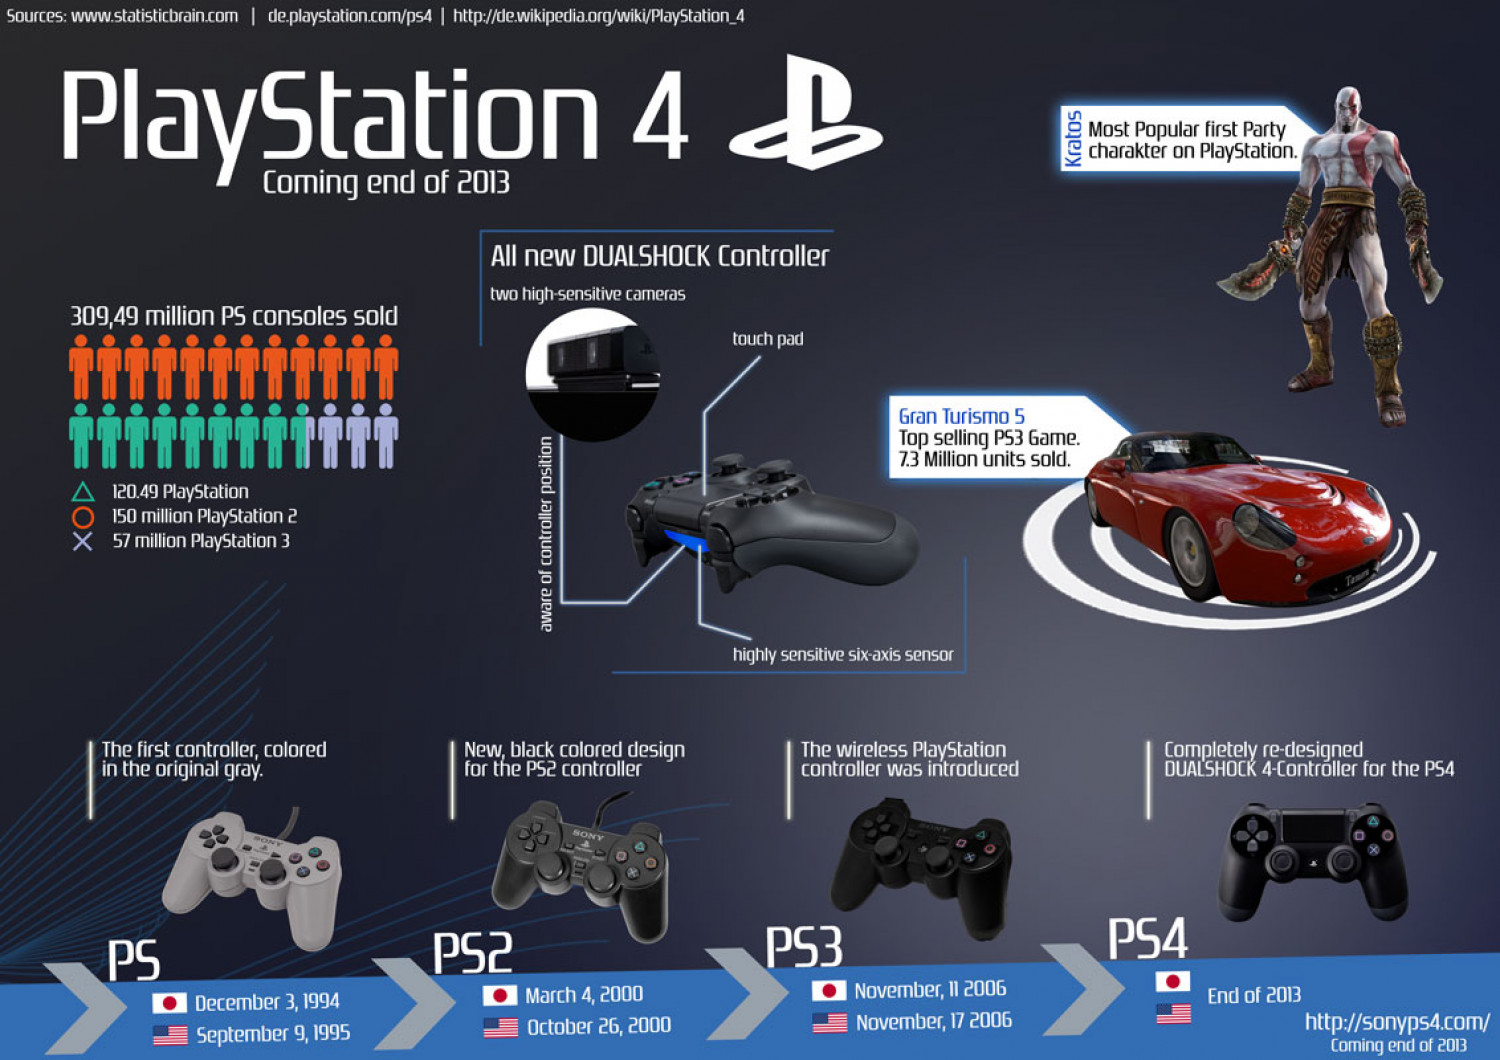 History Games For Ps3 : The evolution of playstation controller visual ly